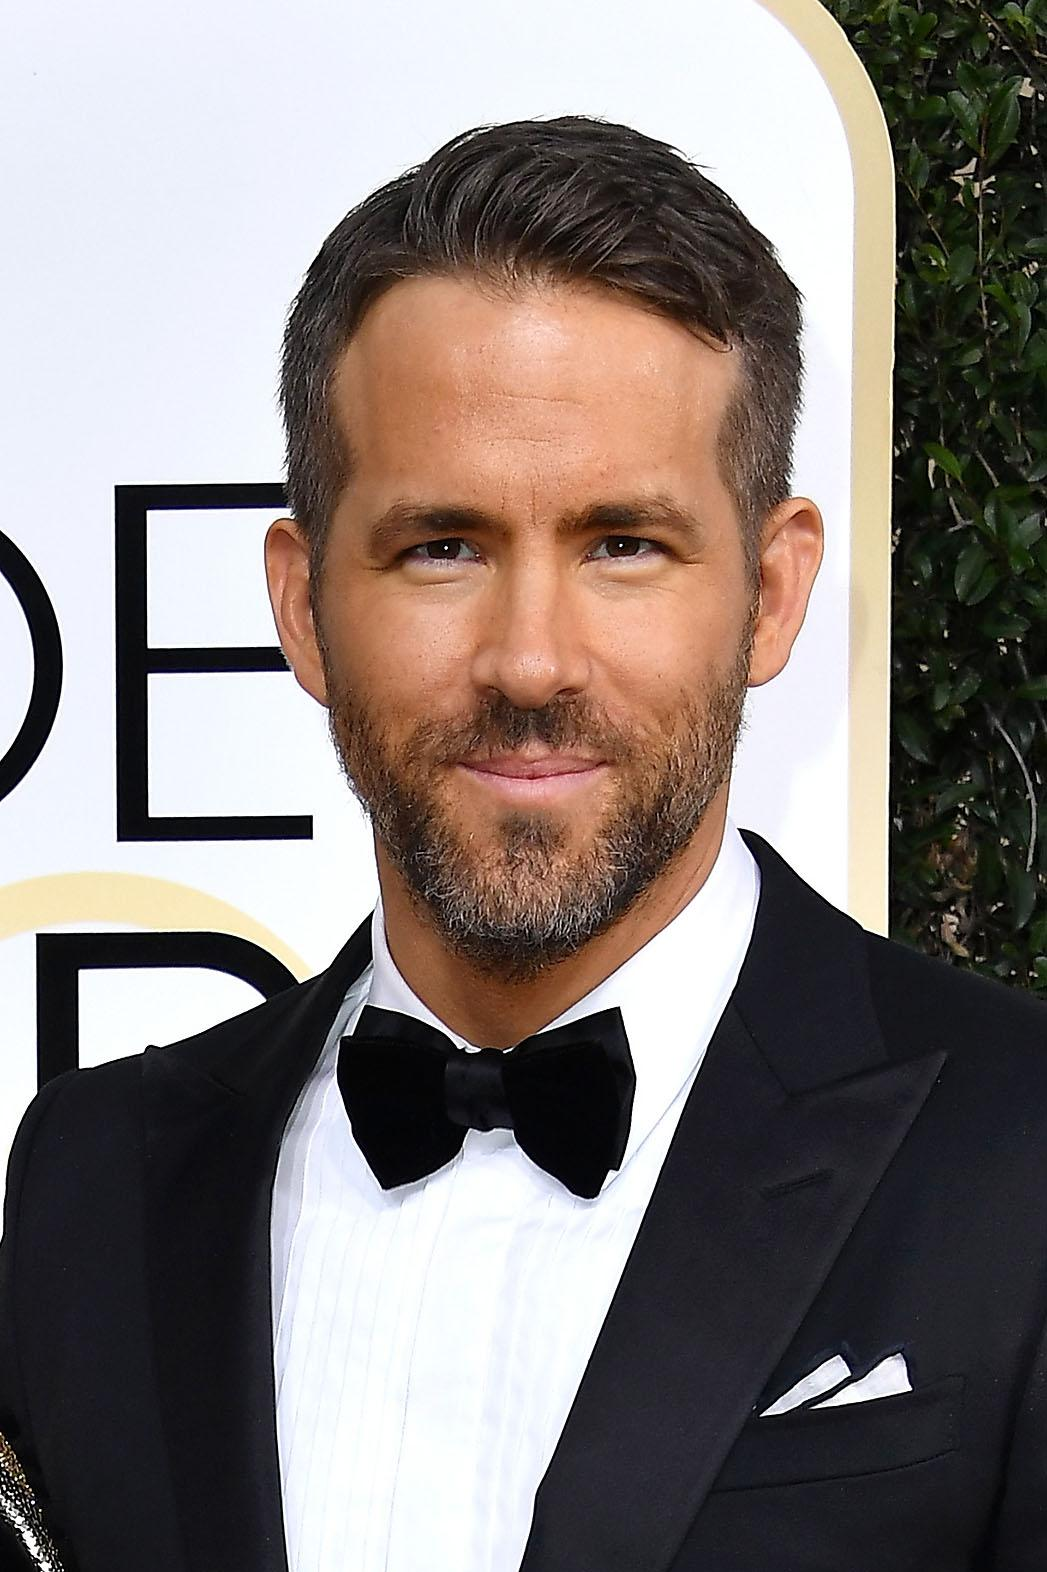 Ryan Reynolds elegant gentleman beard style